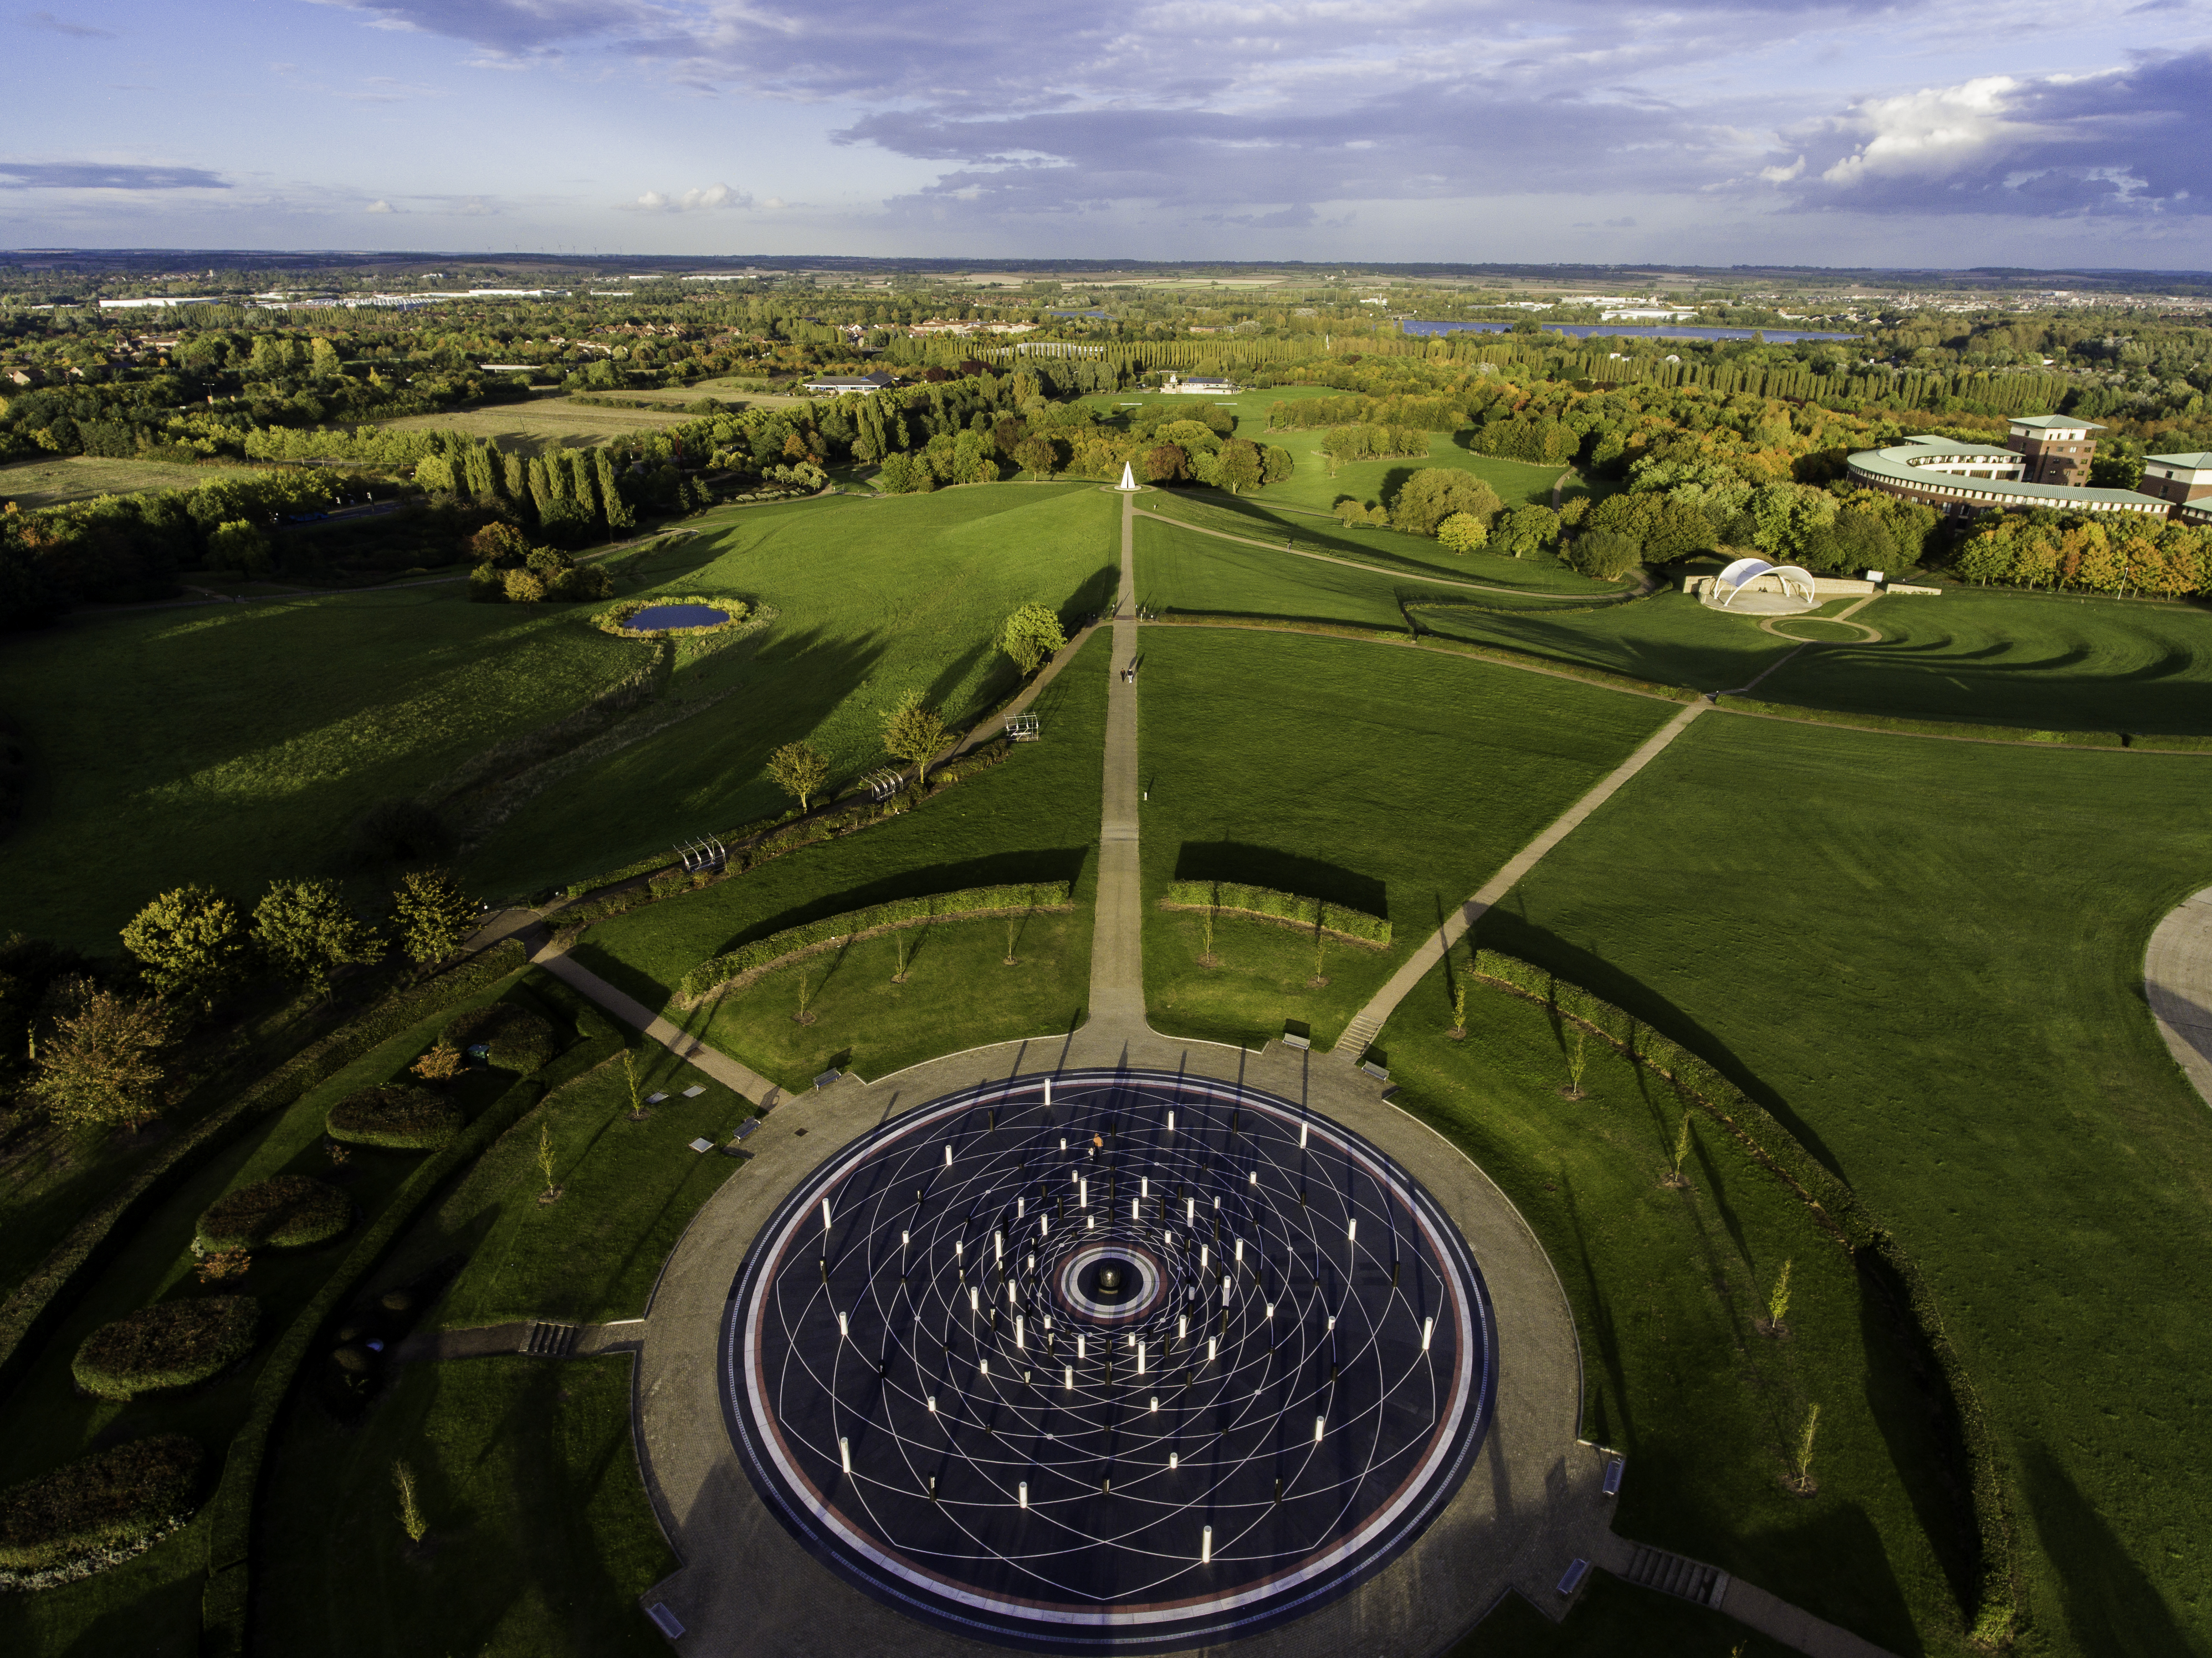 Campbell-Park-Aerial-view-sunny-landscape-mk-rose-beacon